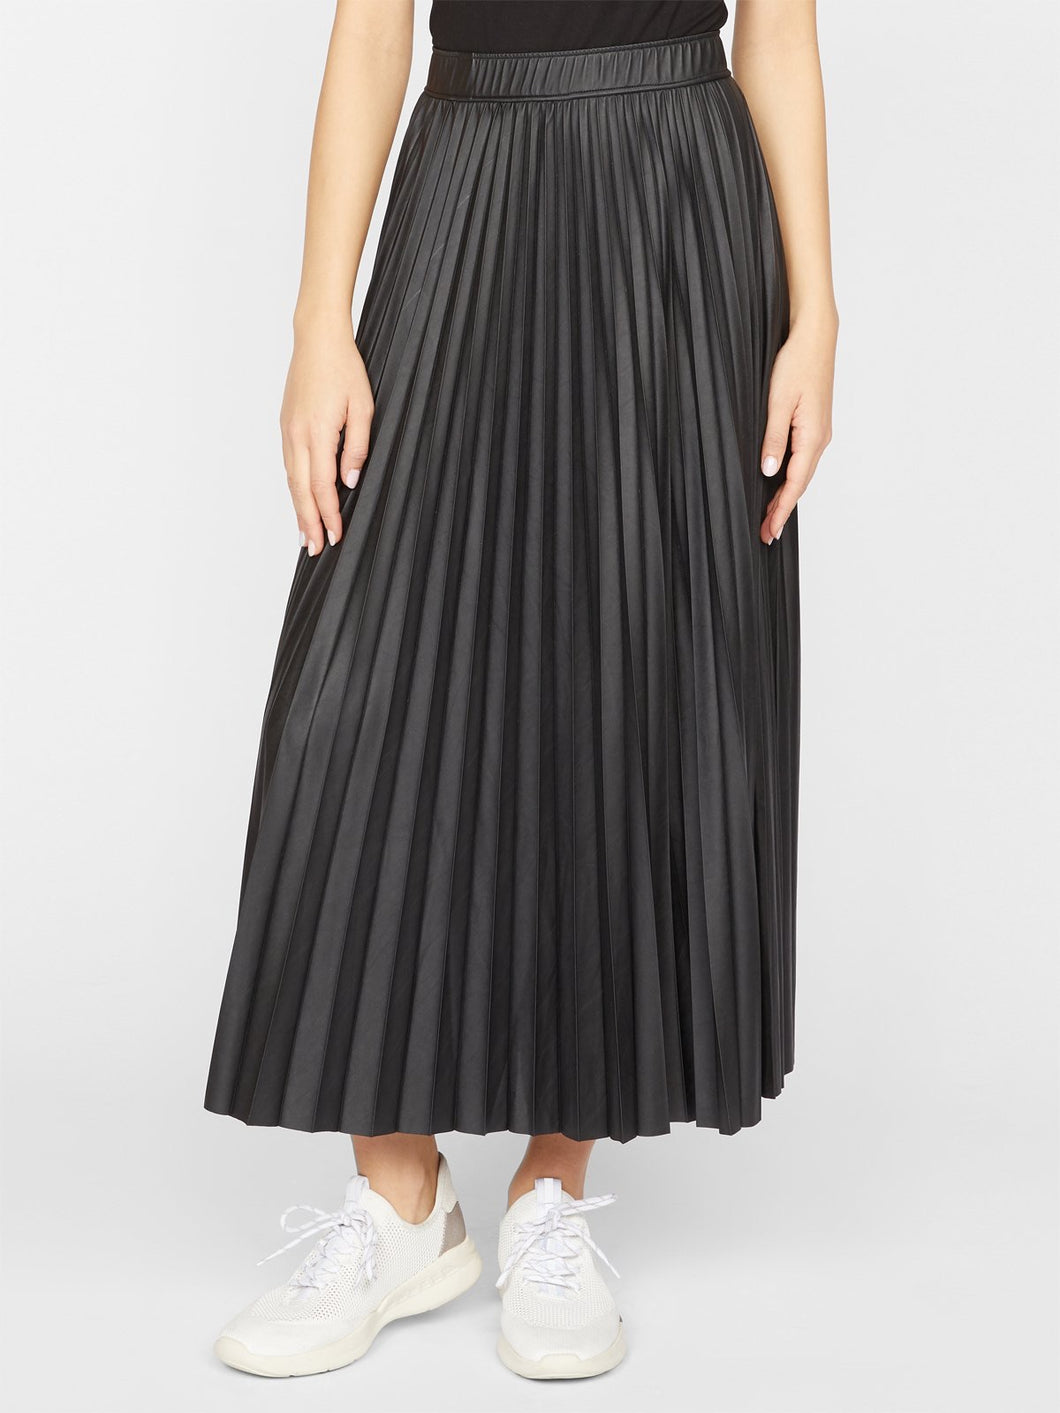 Top Secret Pleated Midi Black Skirt